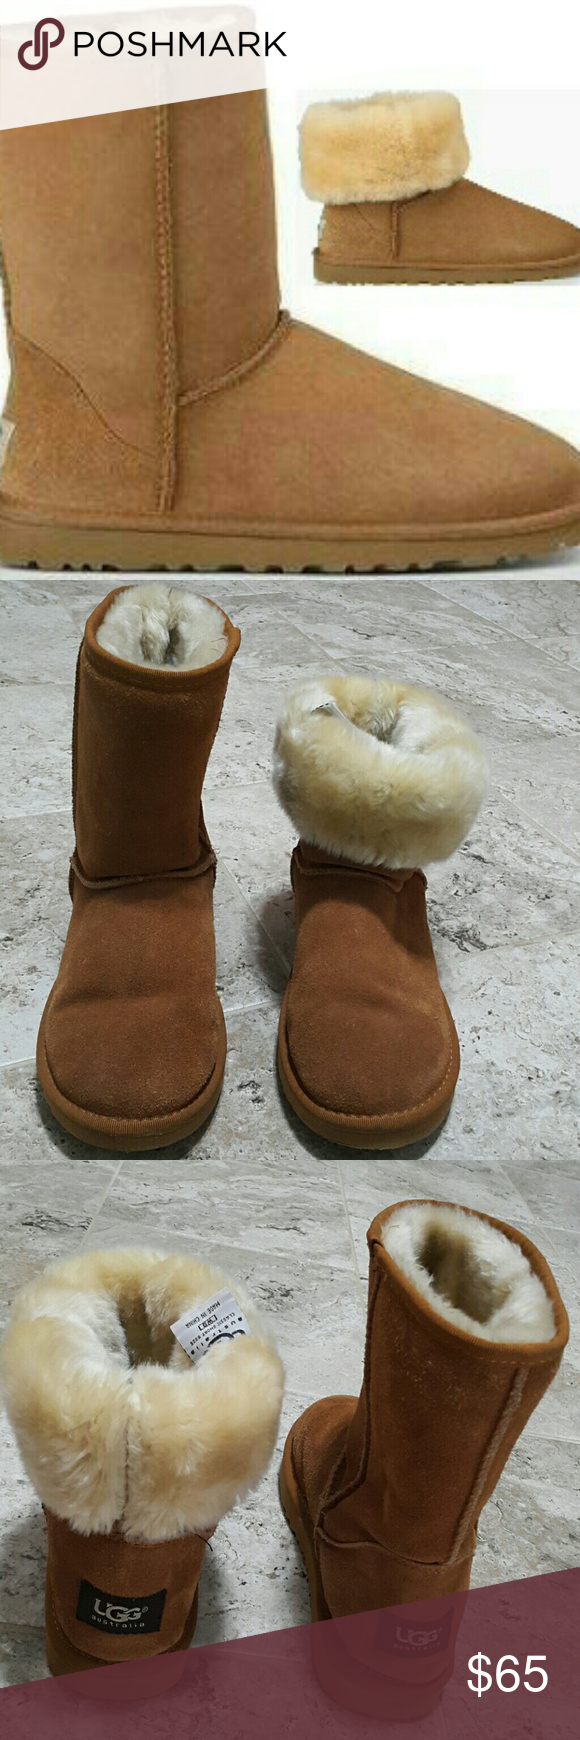 6ee74a8667d UGG Classic Boots Great condition. Clean in/outside. A bit worn sole ...